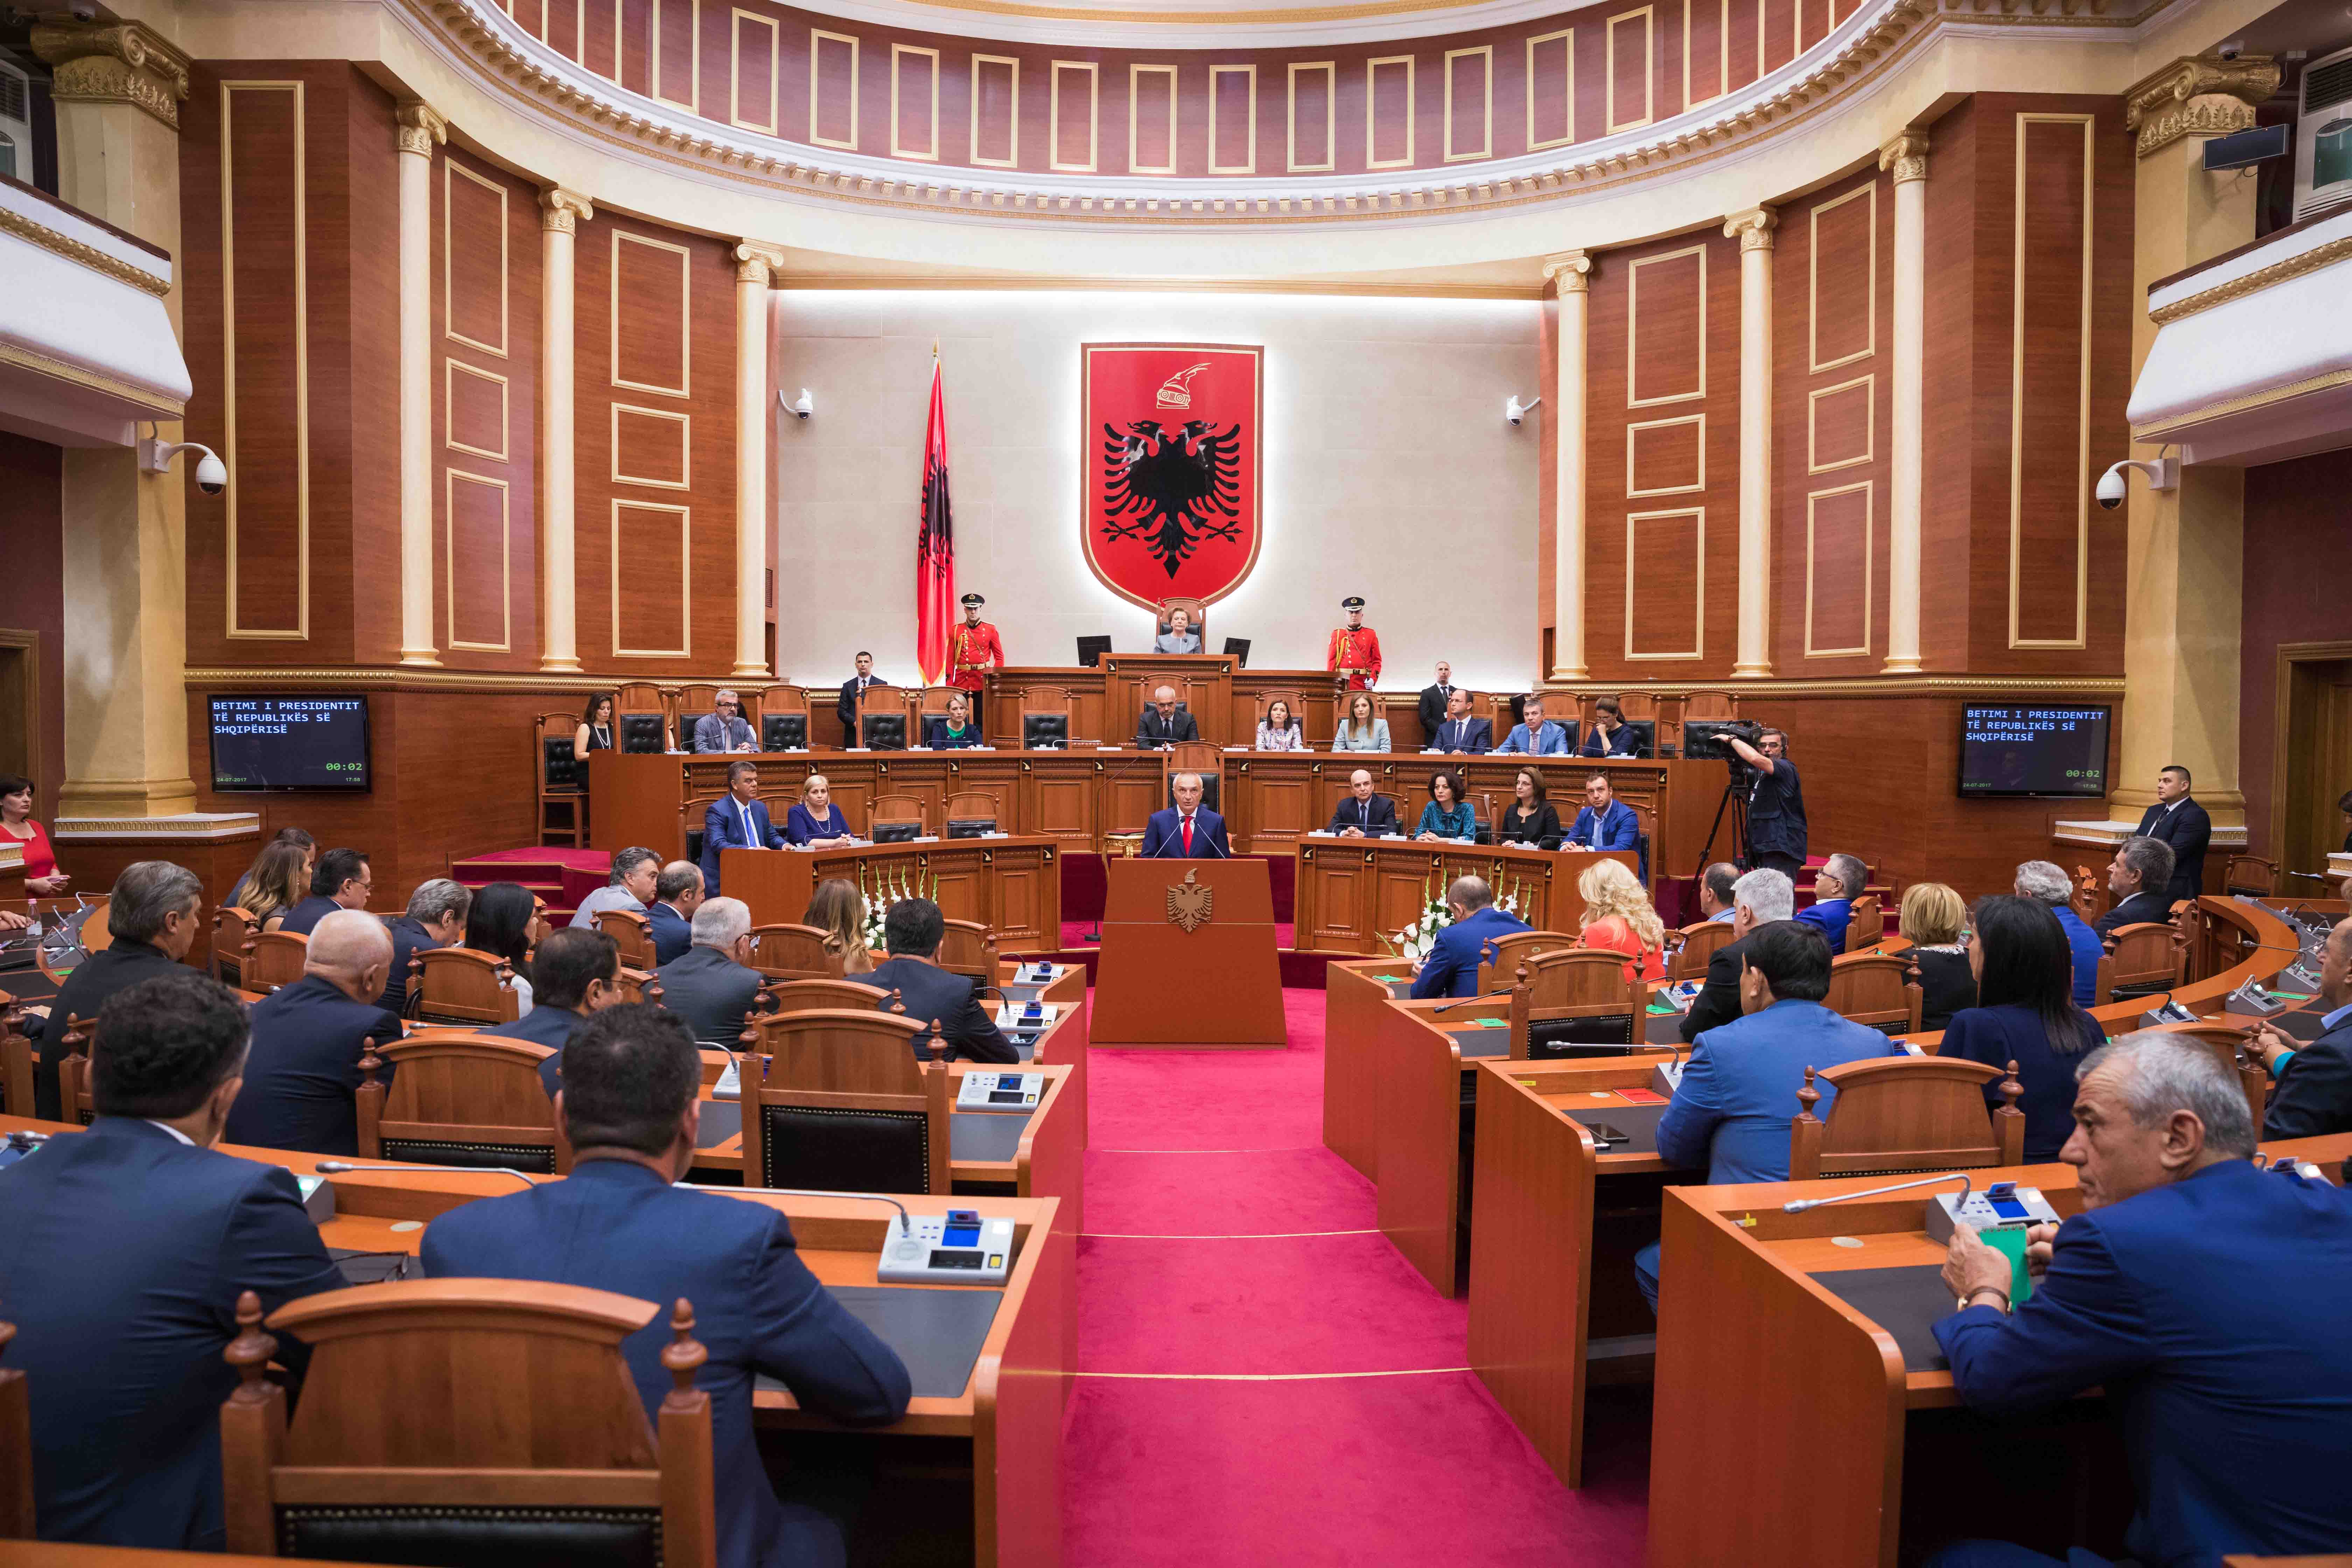 Albanian parl gives green light to talks on Vlora airport construction project